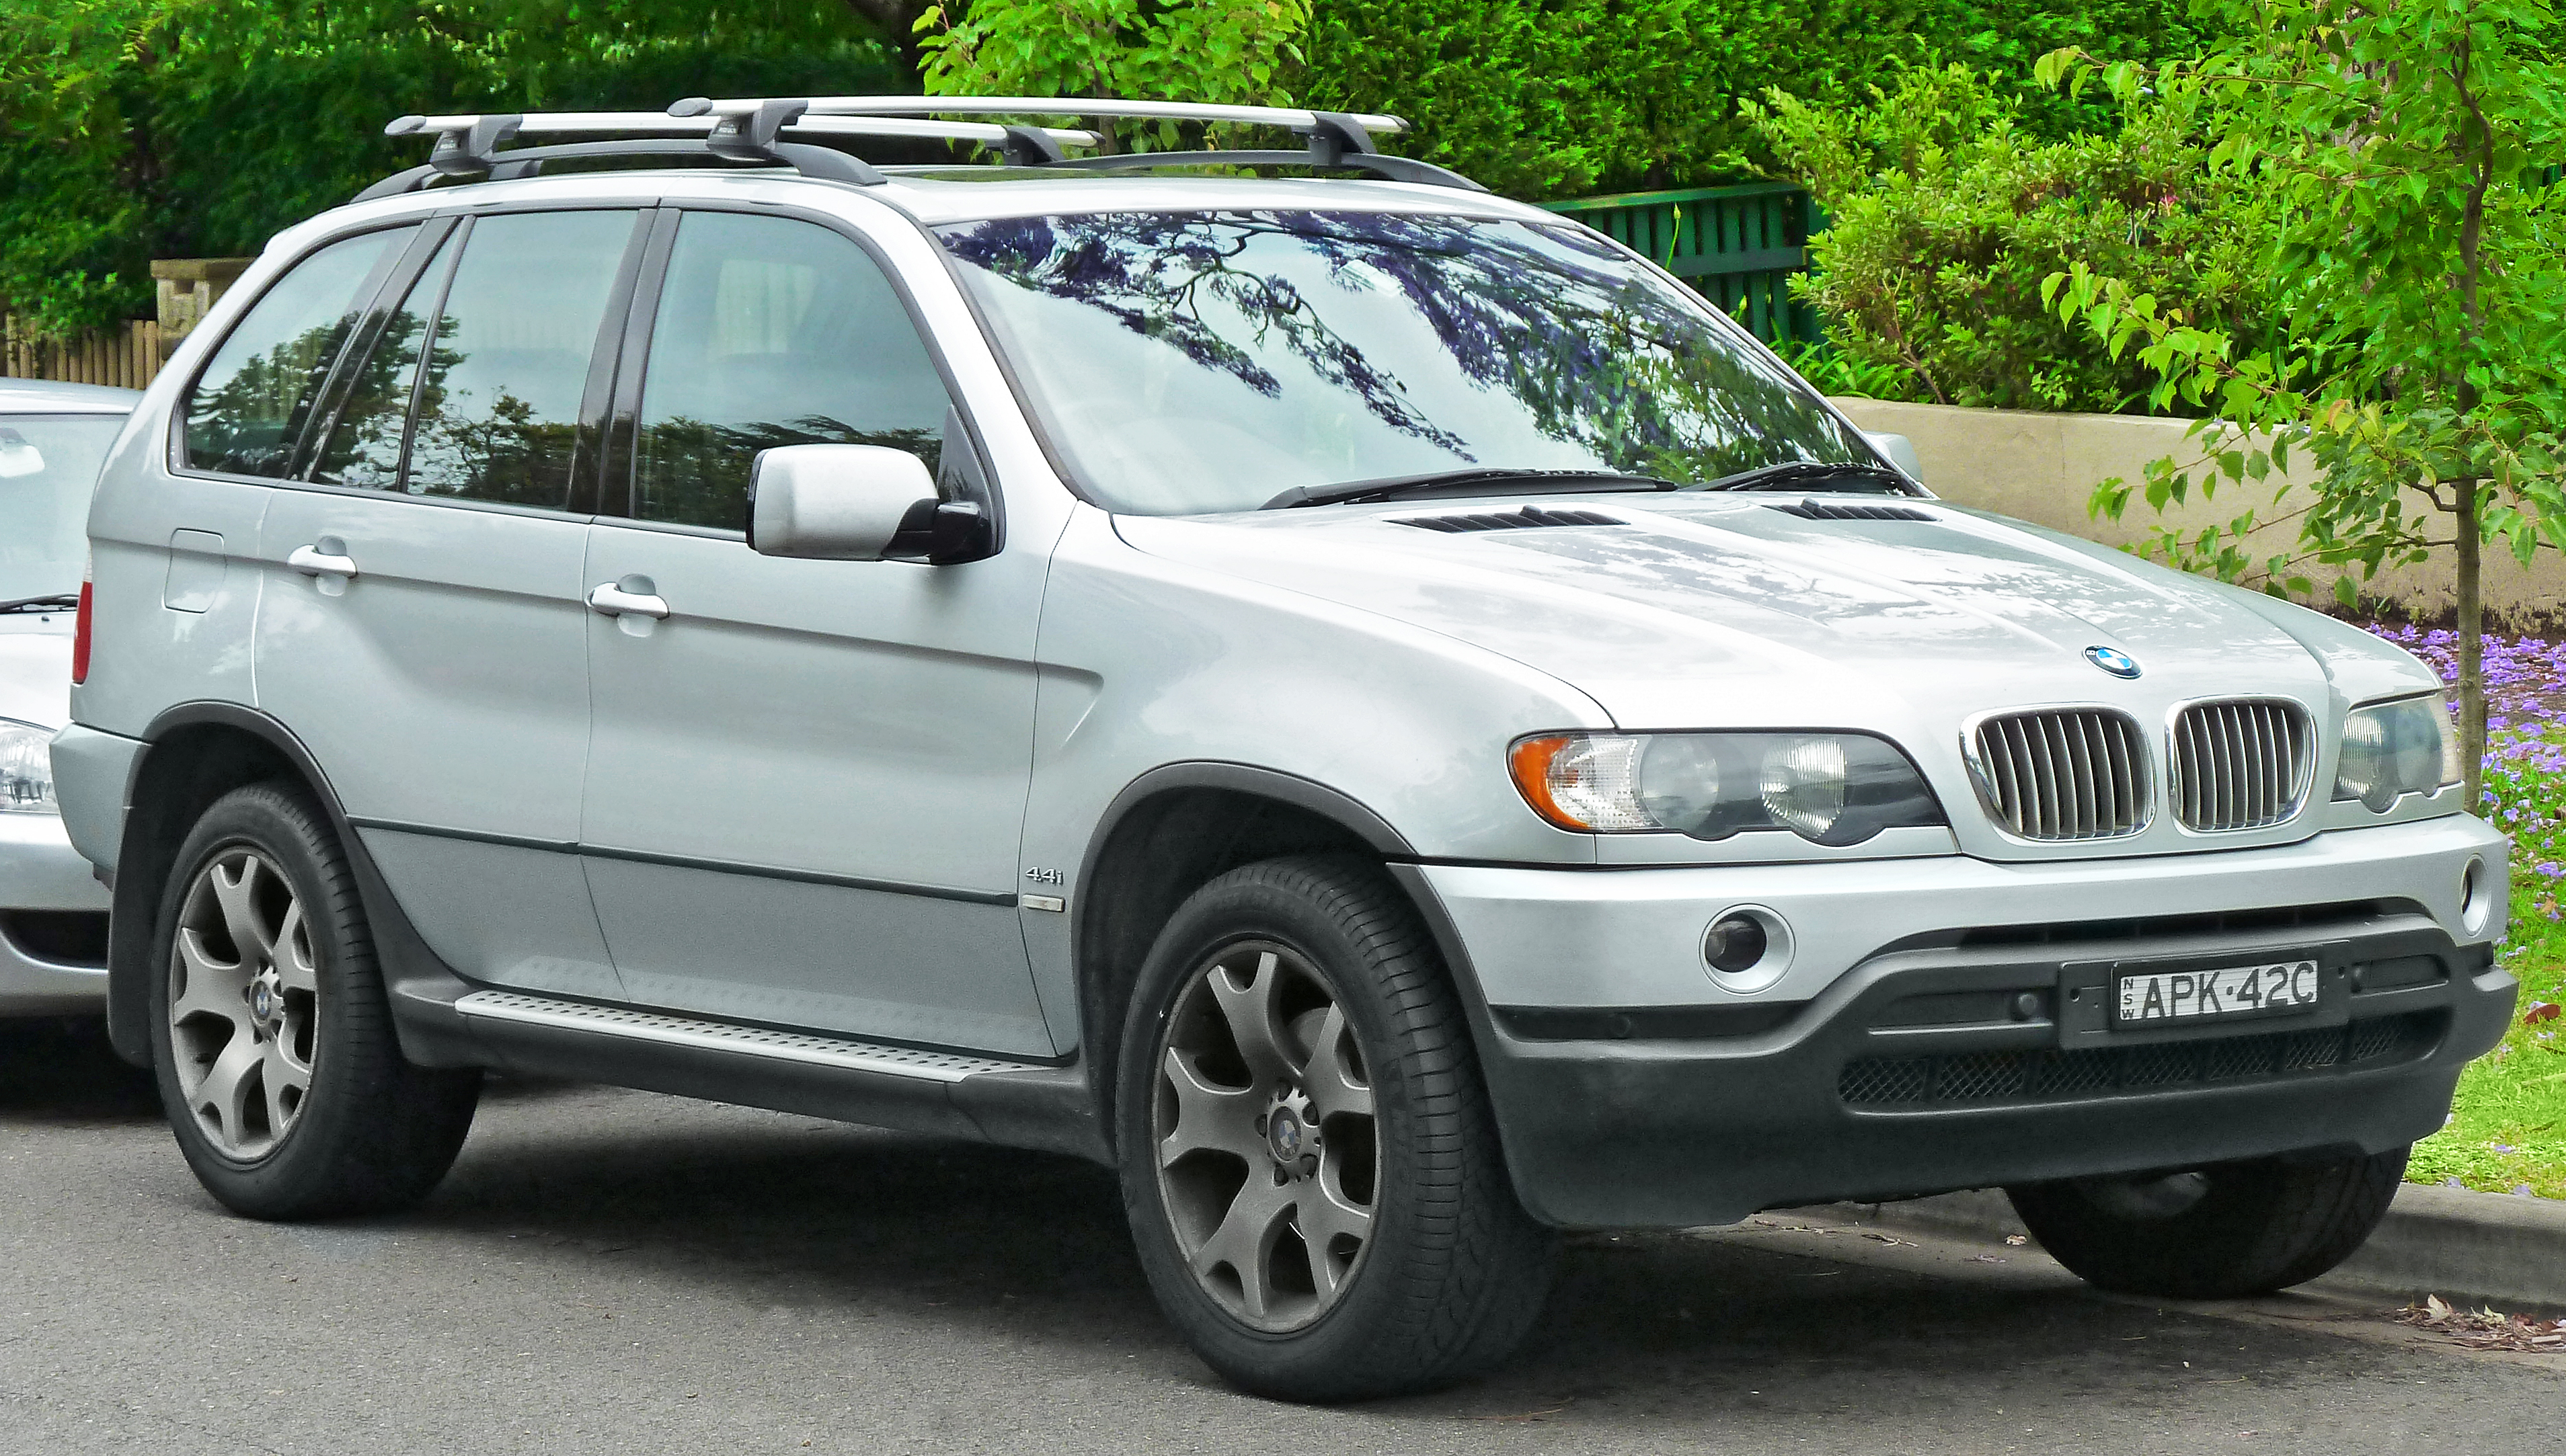 BMW X5 I (E53) 1999 - 2003 SUV 5 door #1